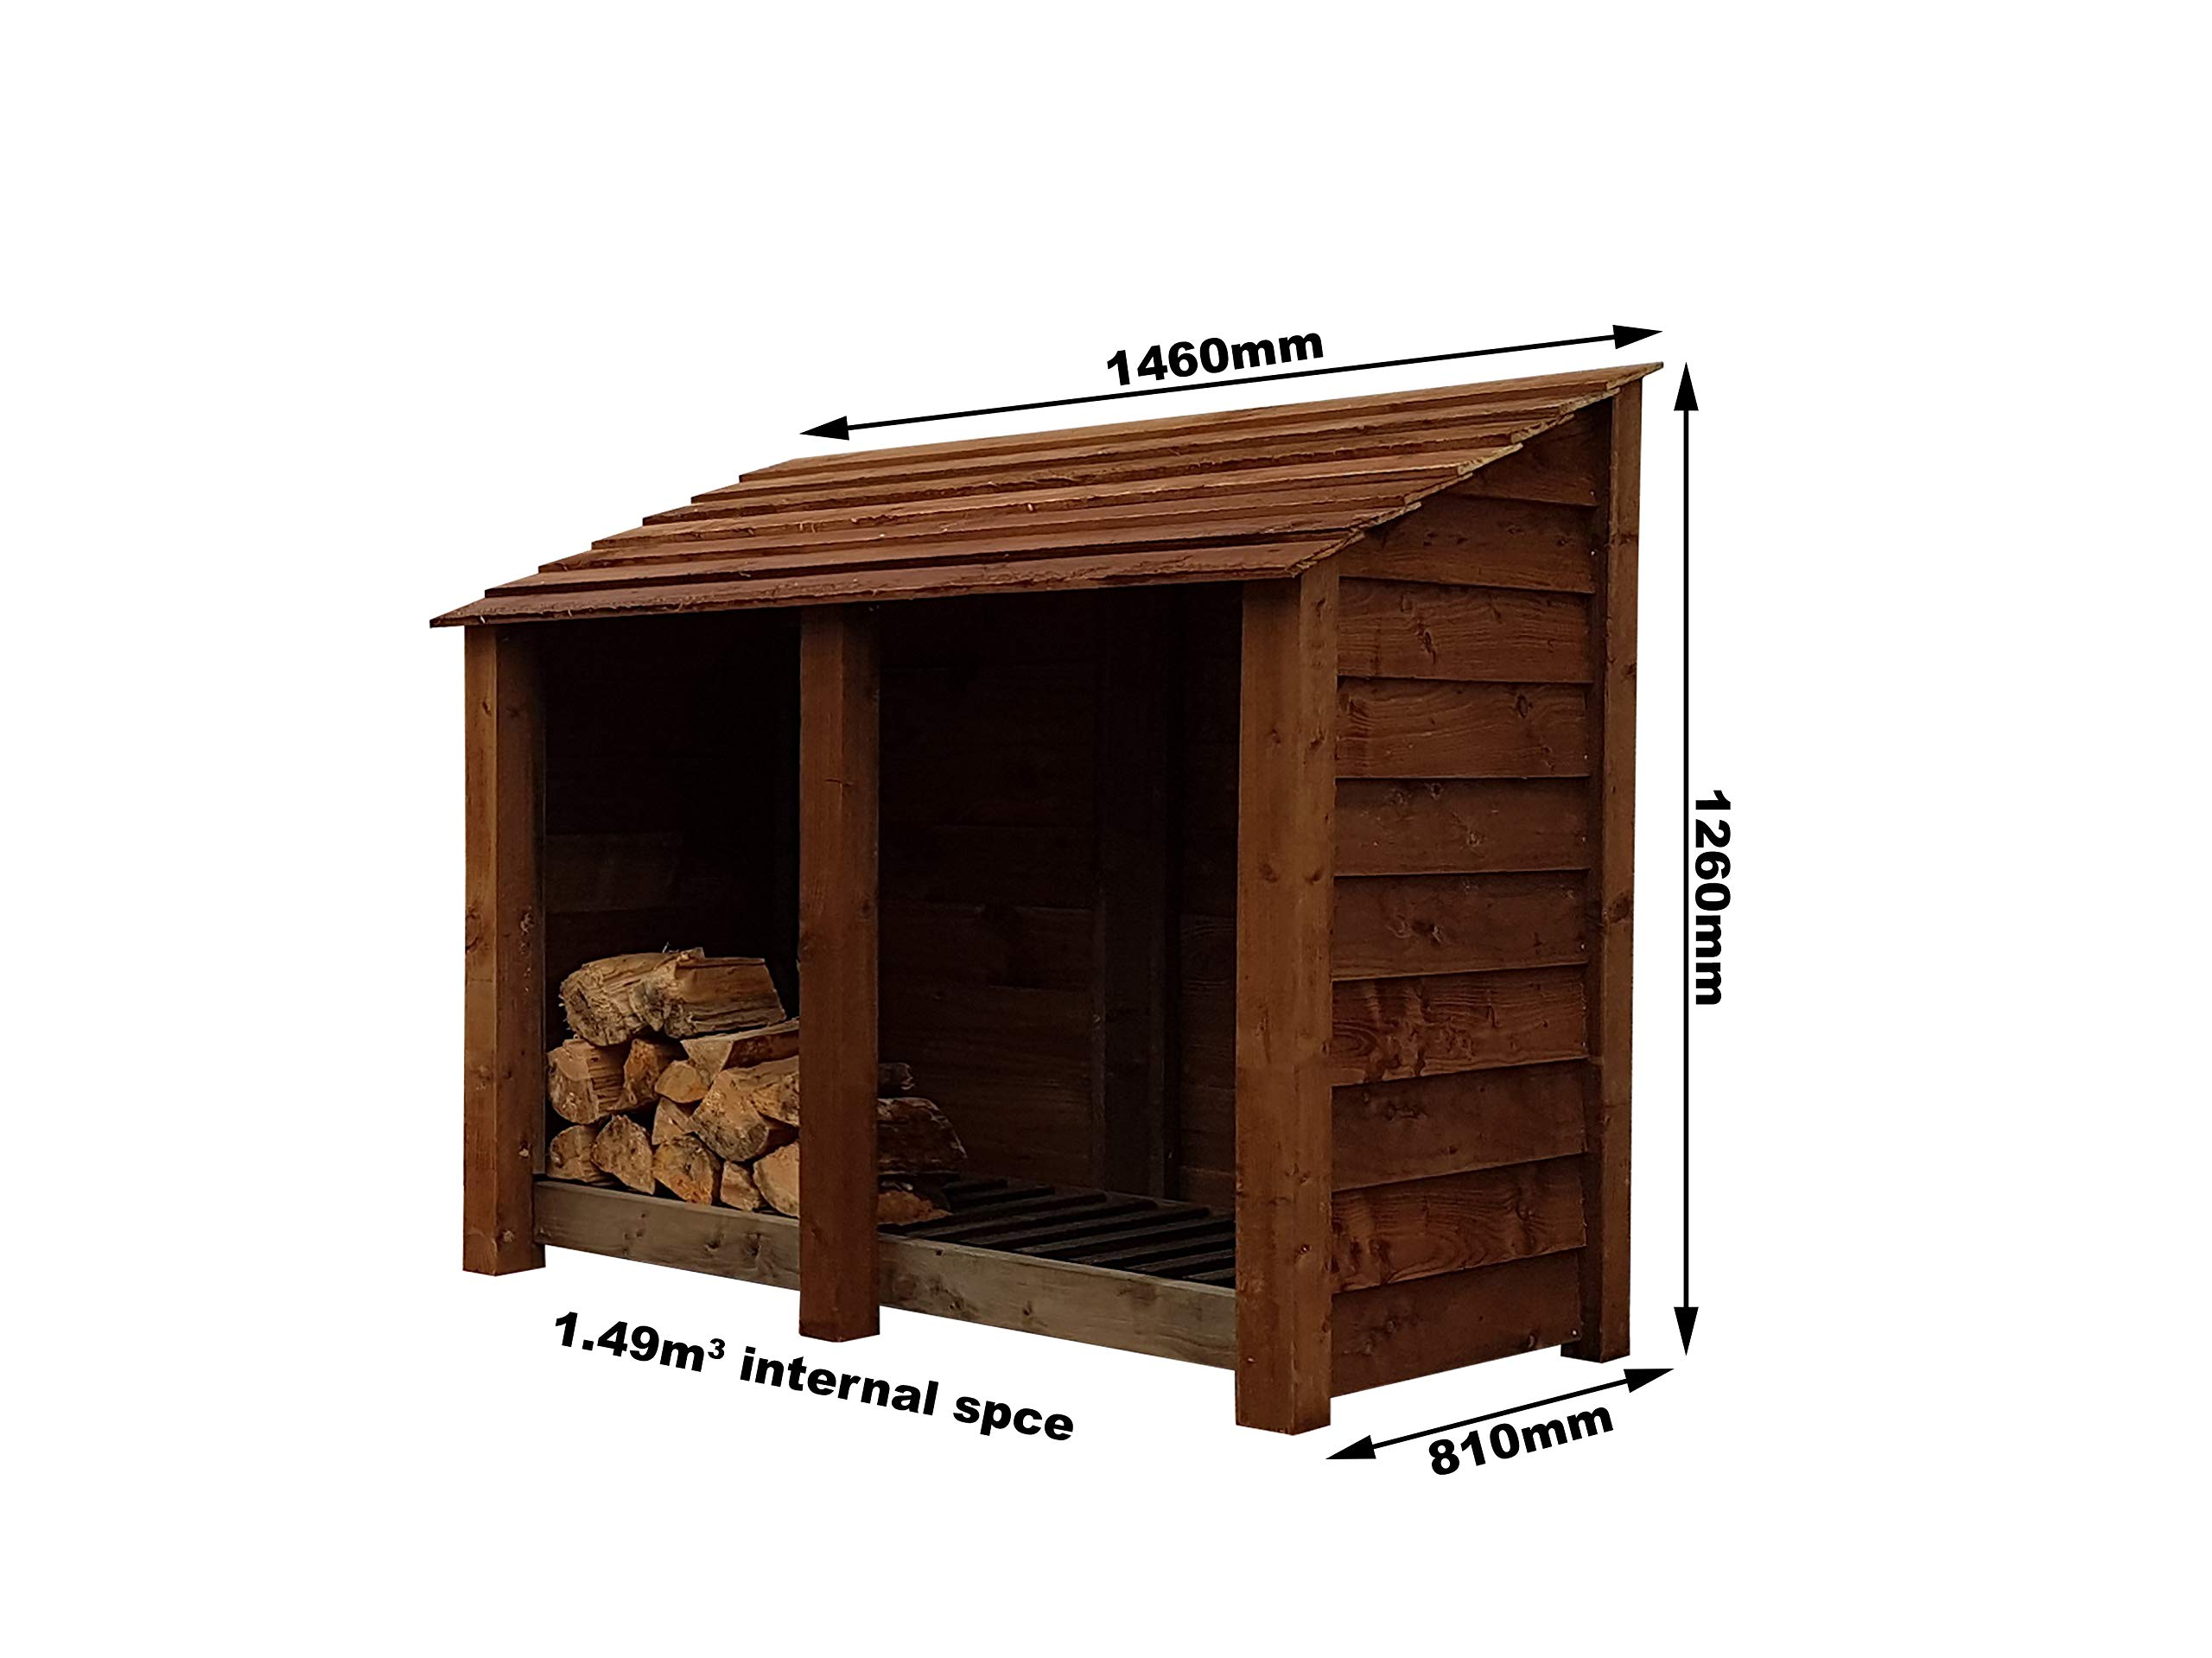 Arbor Garden Solutions Wooden Log Store 4Ft, Light Green (Natural) or Brown (1.49 cubic meters capacity) (W-146cm, H-126cm, D-81cm) (Brown)